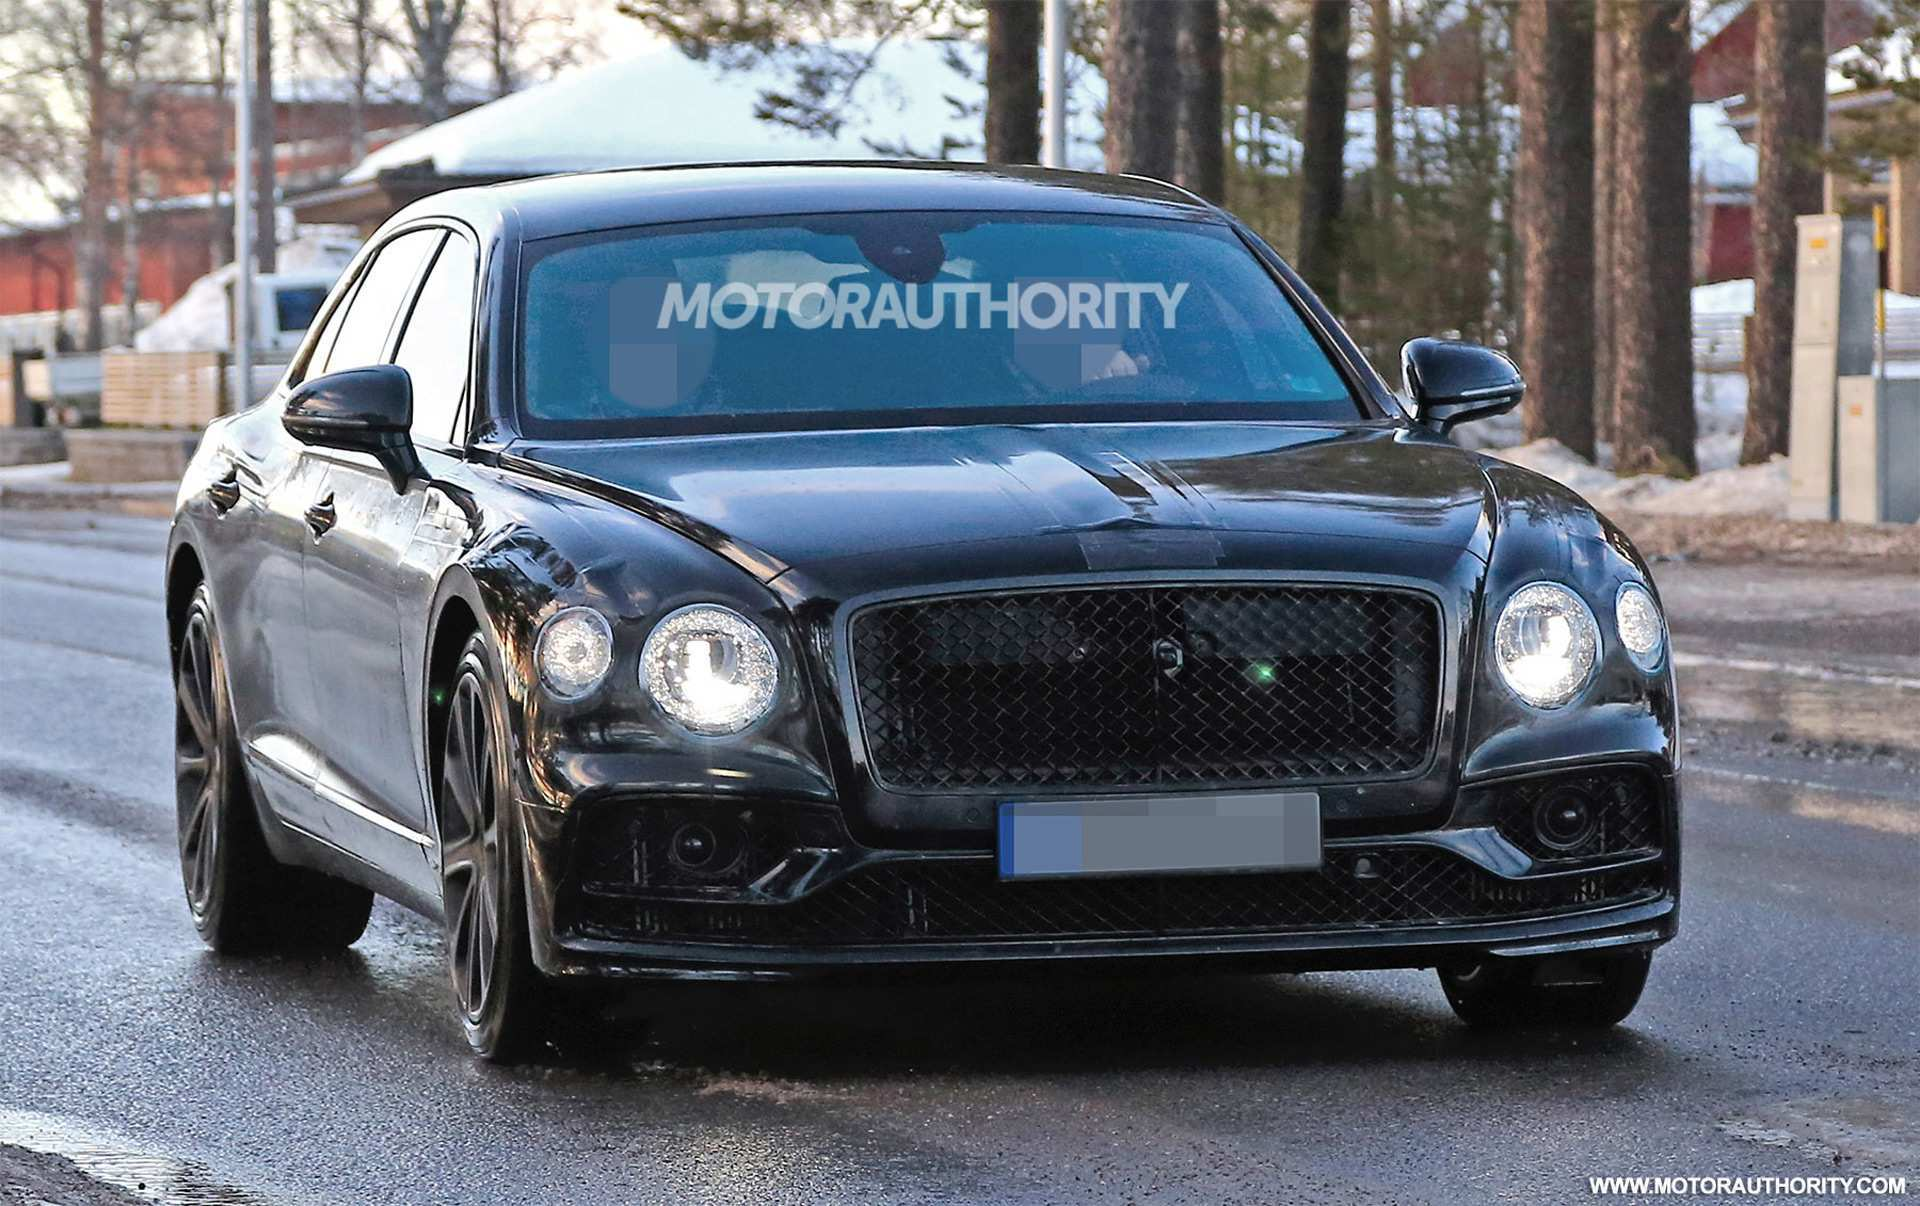 57 The Best 2020 Bentley Flying Spur Exterior And Interior